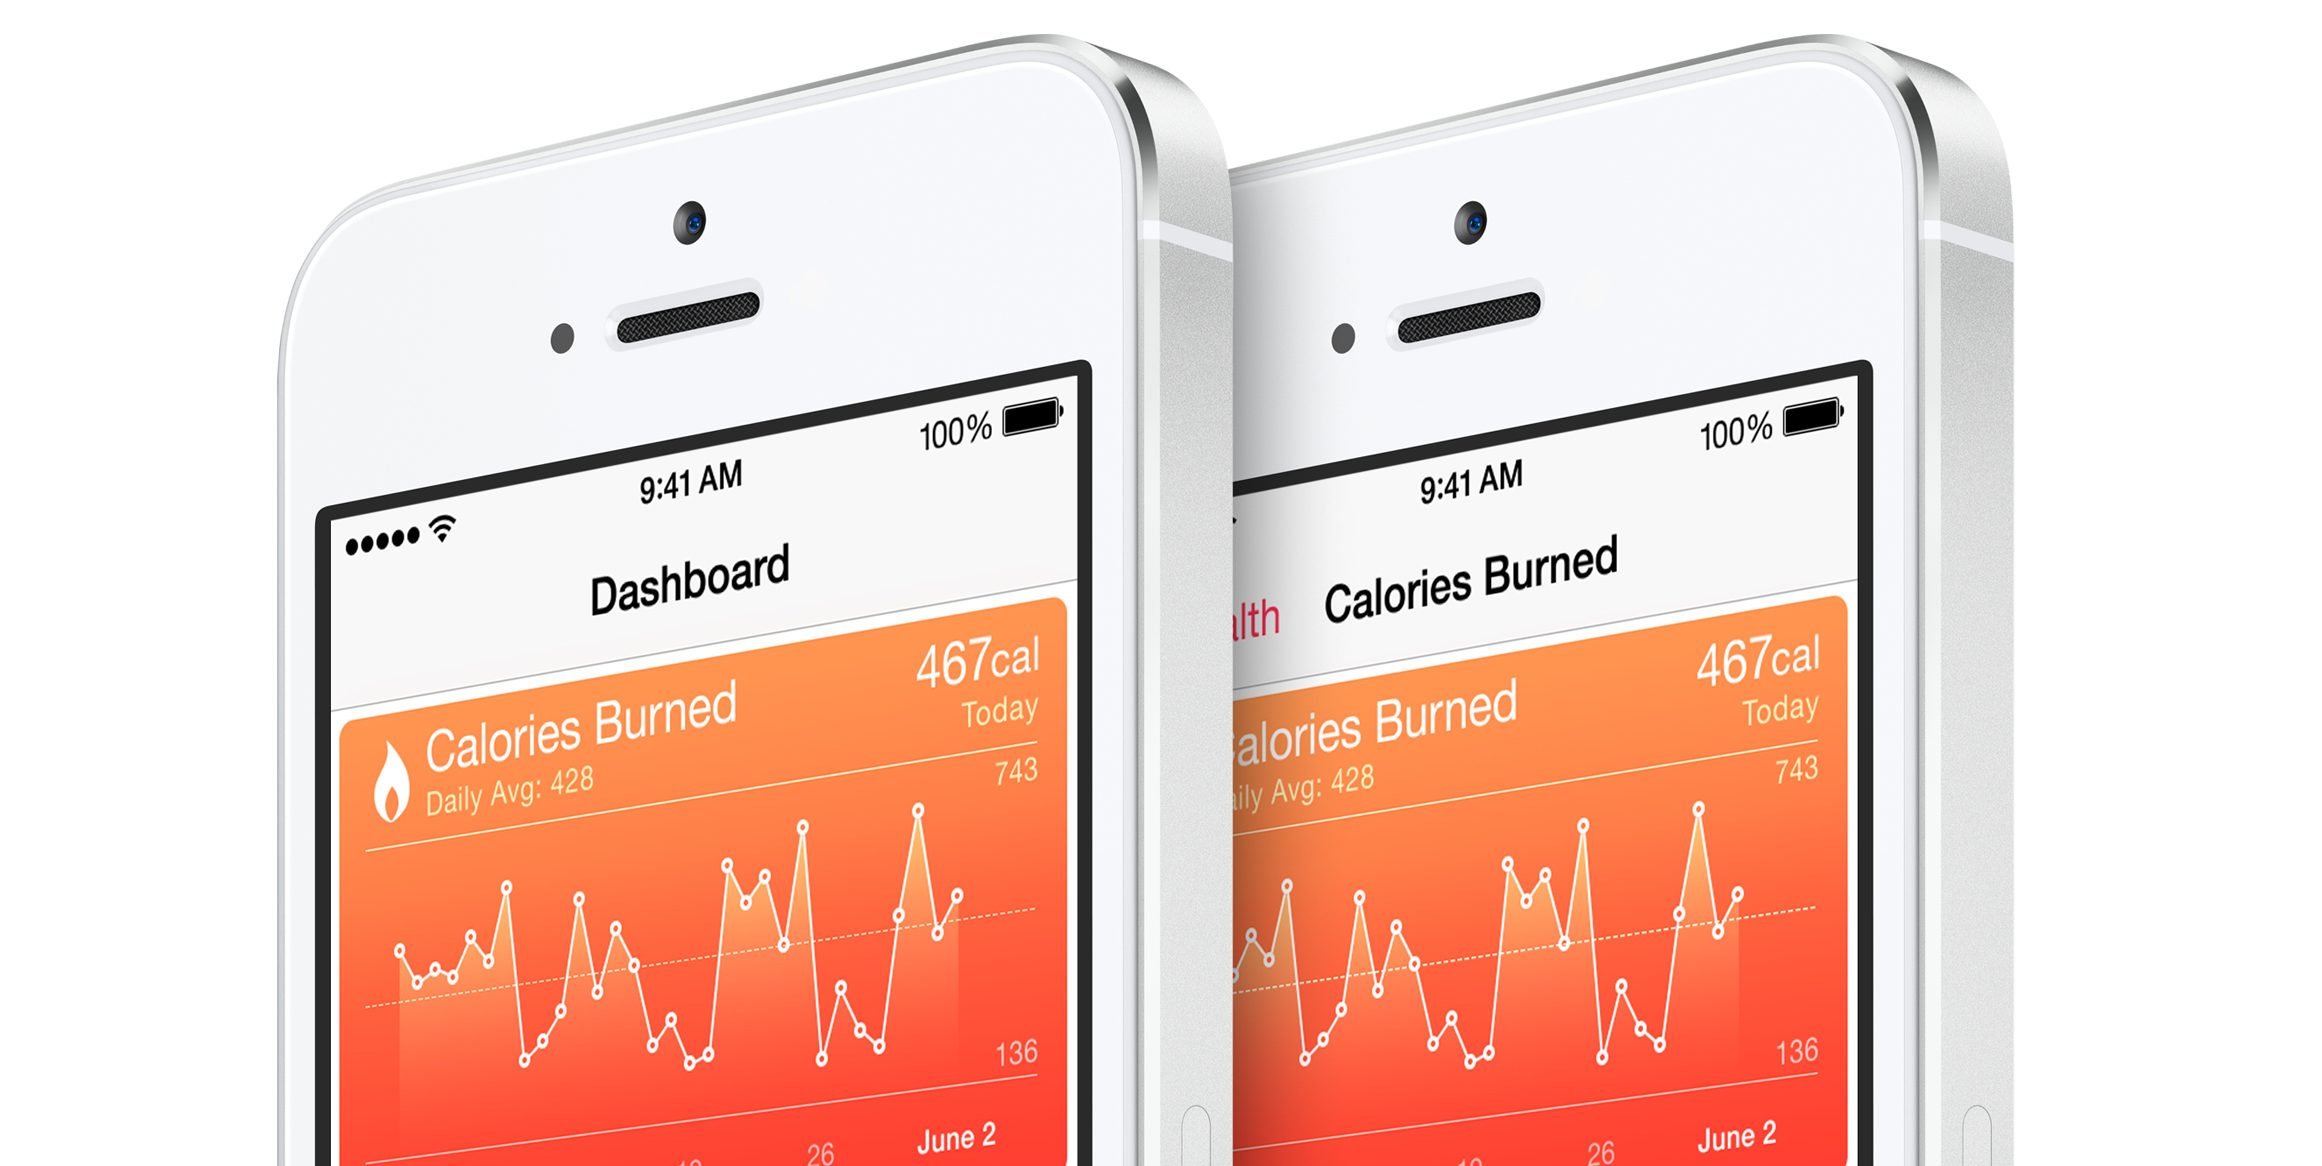 Ehr giant epic explains how it will bring apple healthkit data to doctors also rh venturebeat